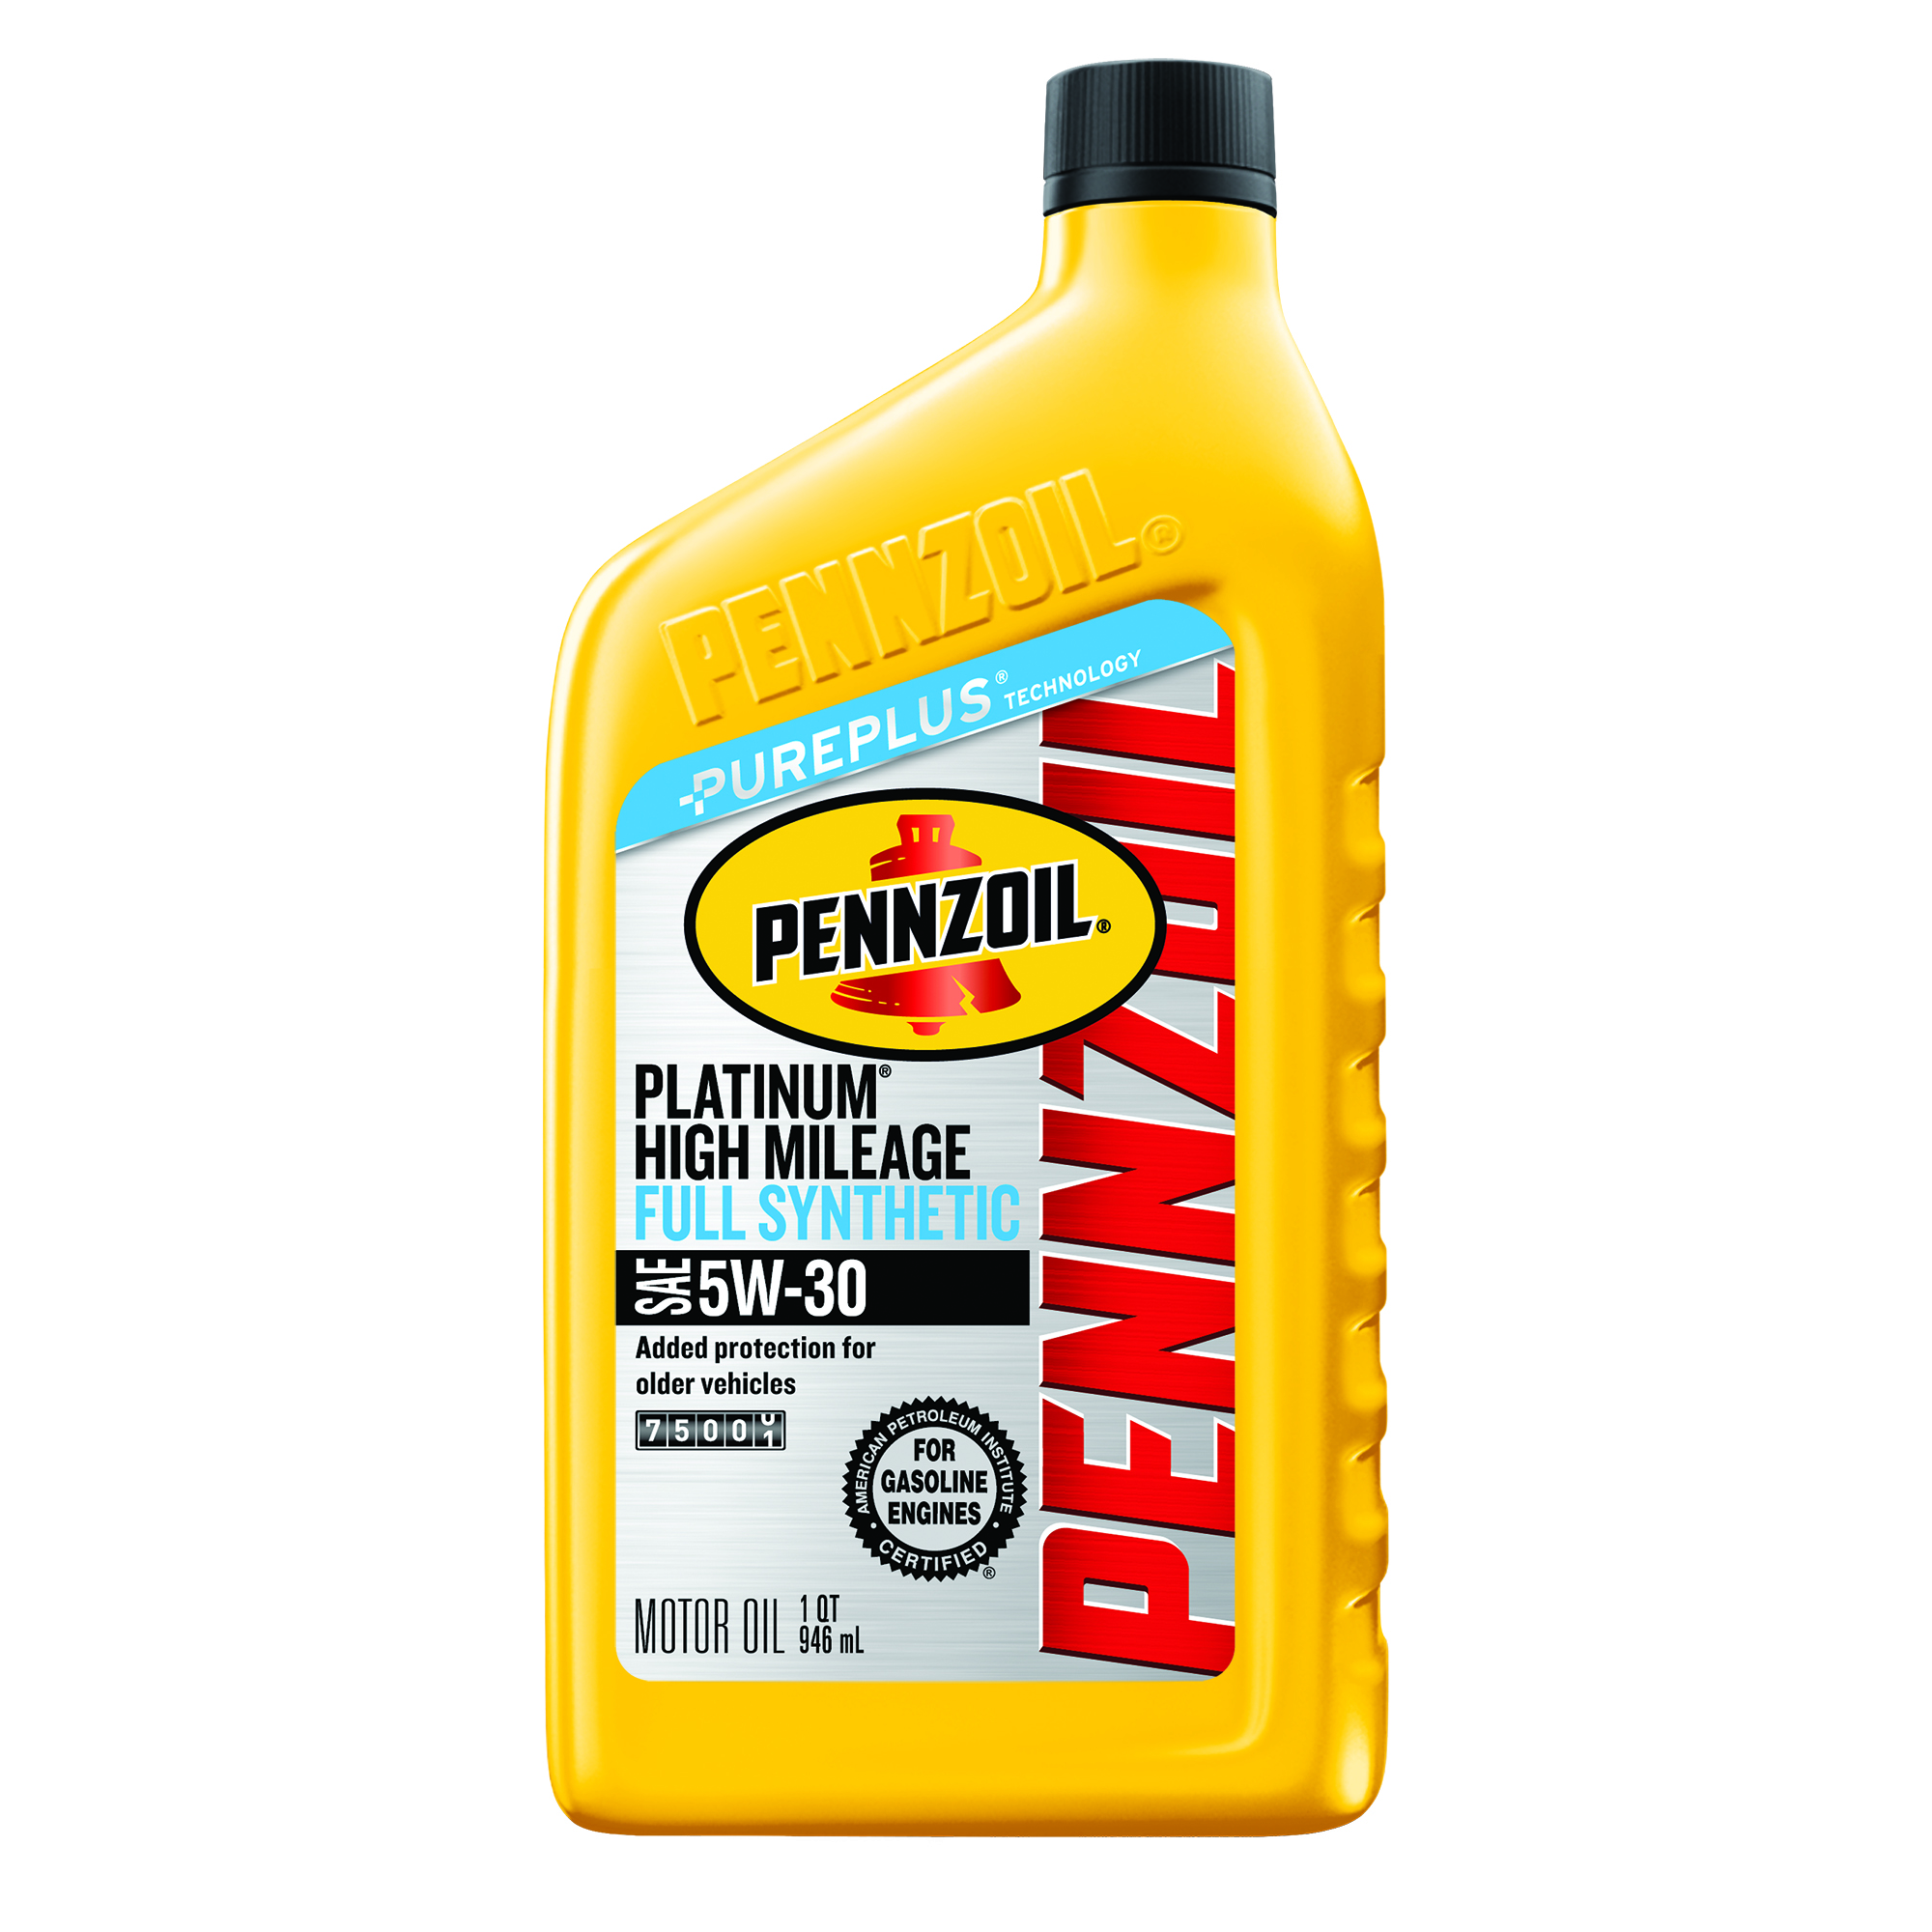 Nonconfig for Pennzoil platinum 5w30 full synthetic motor oil reviews